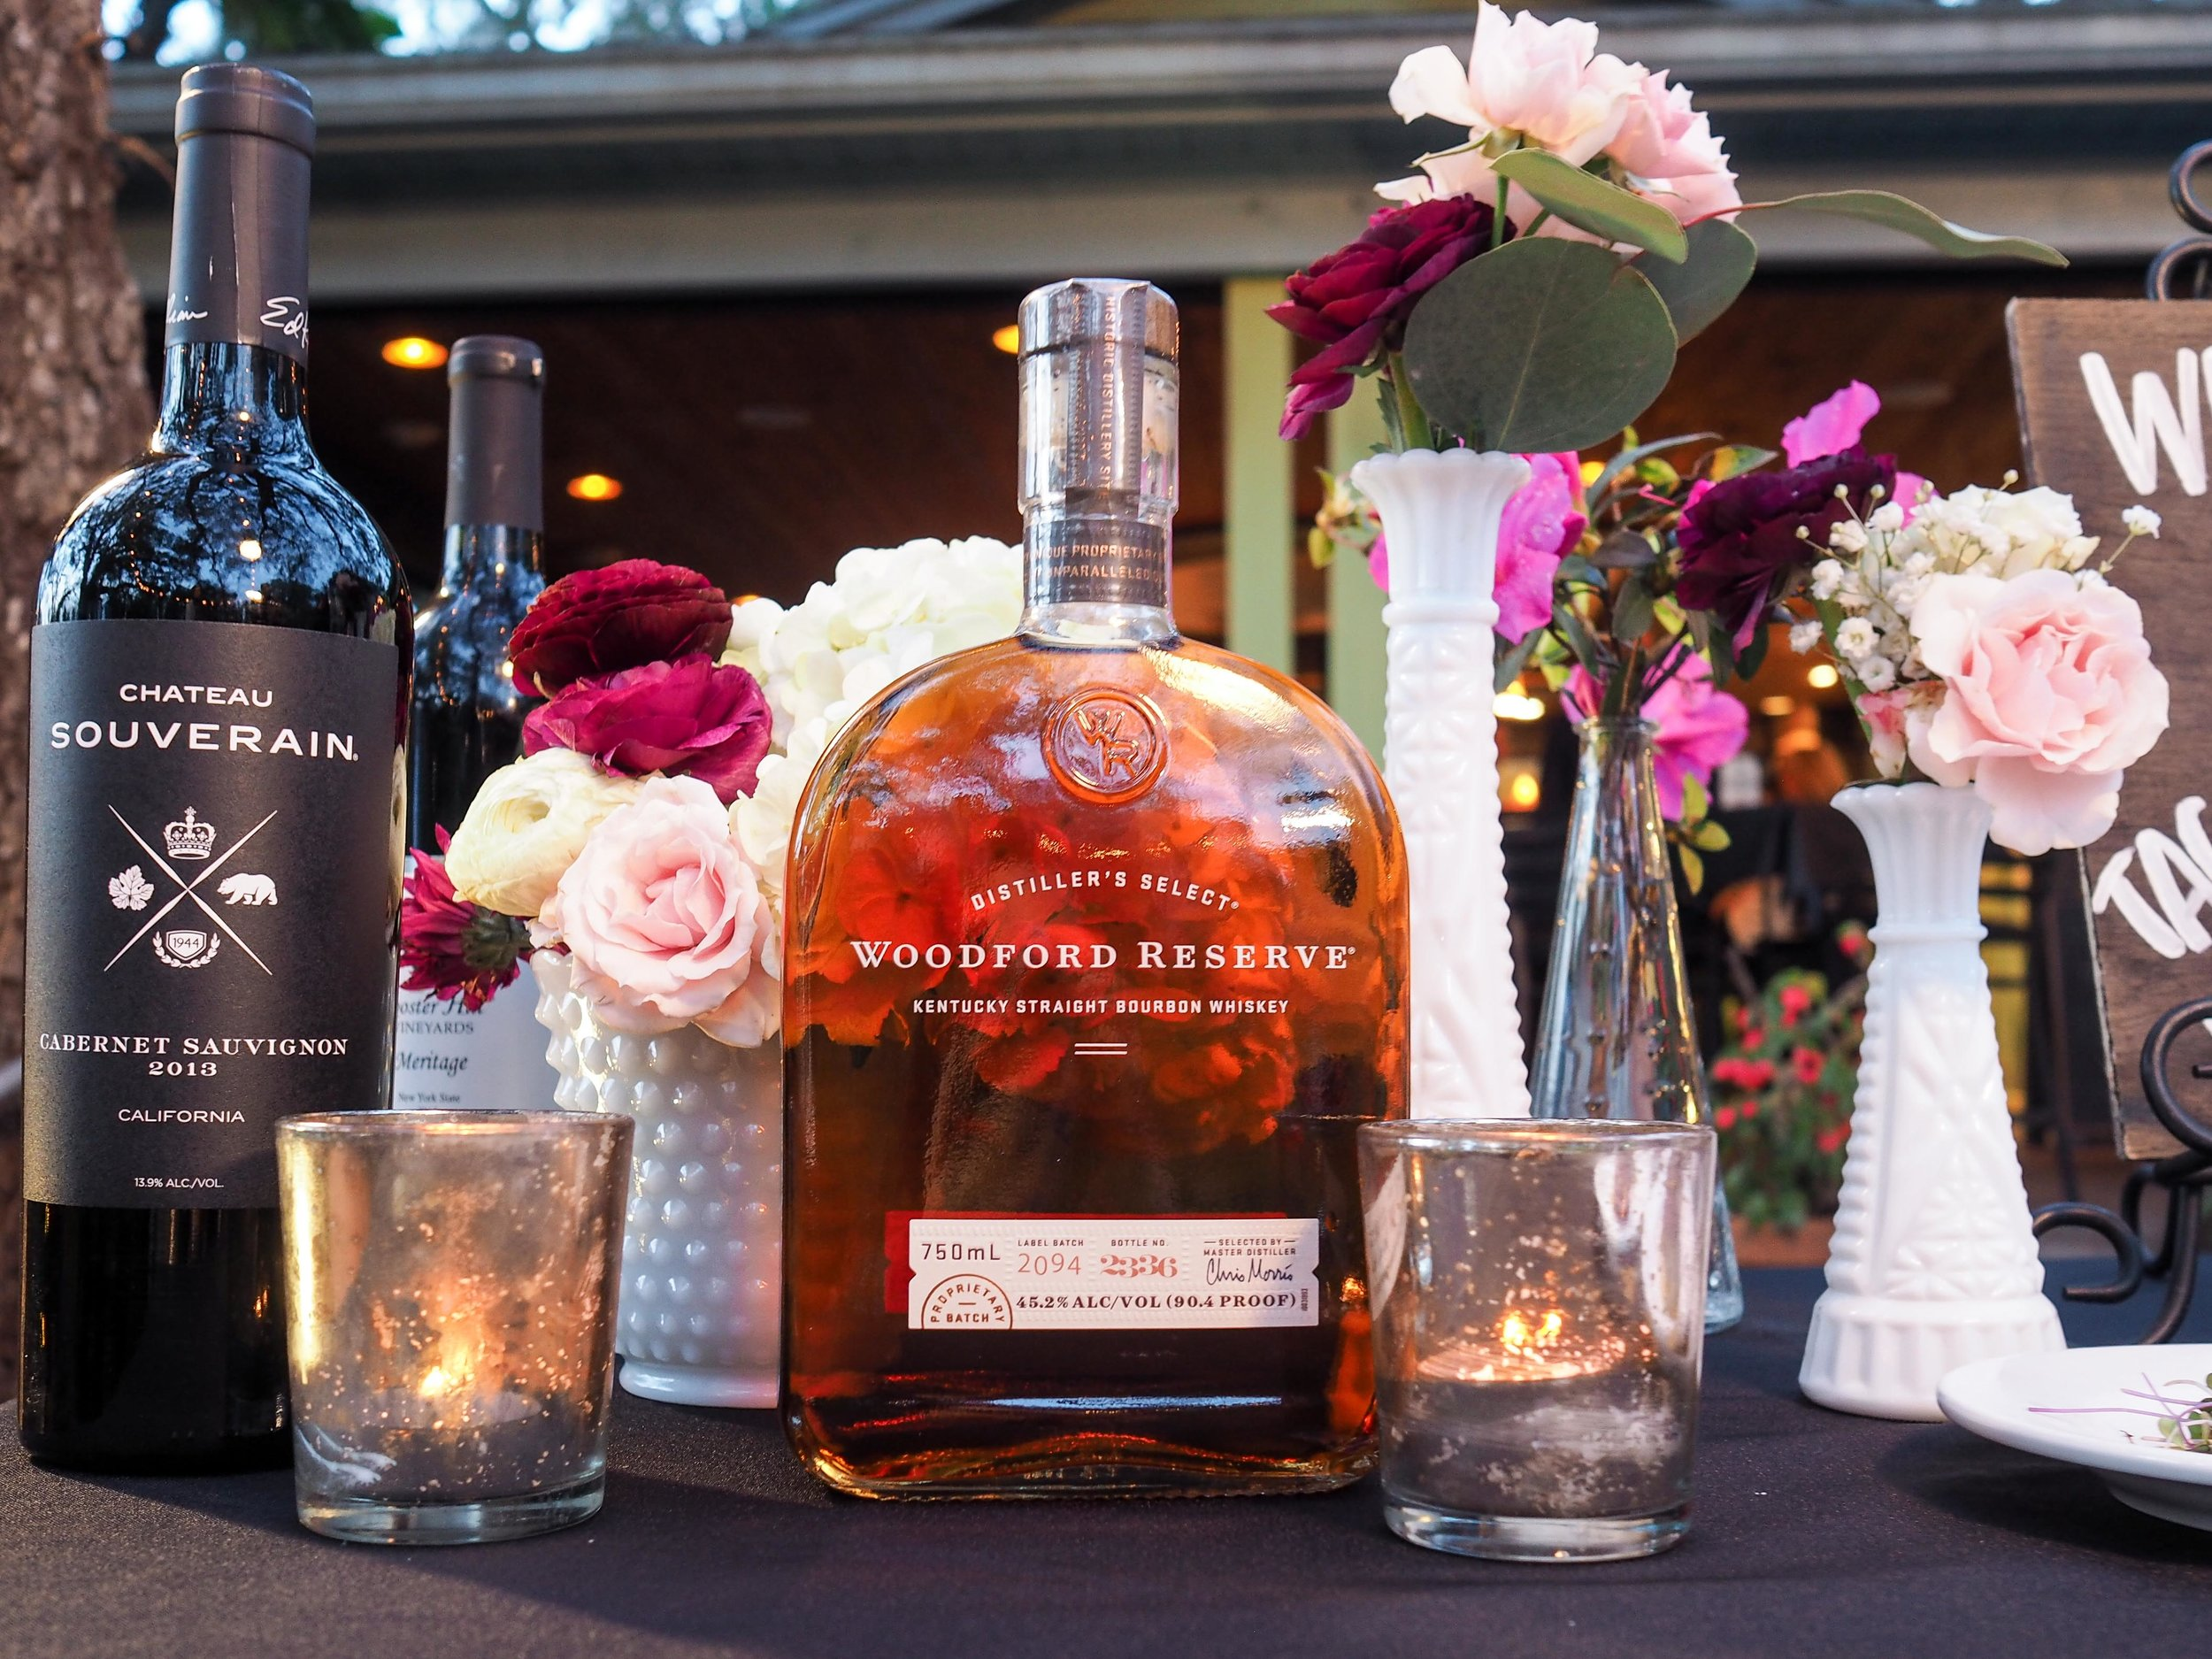 Special thanks to Woodford Reserve for sponsoring this evening's cocktails.